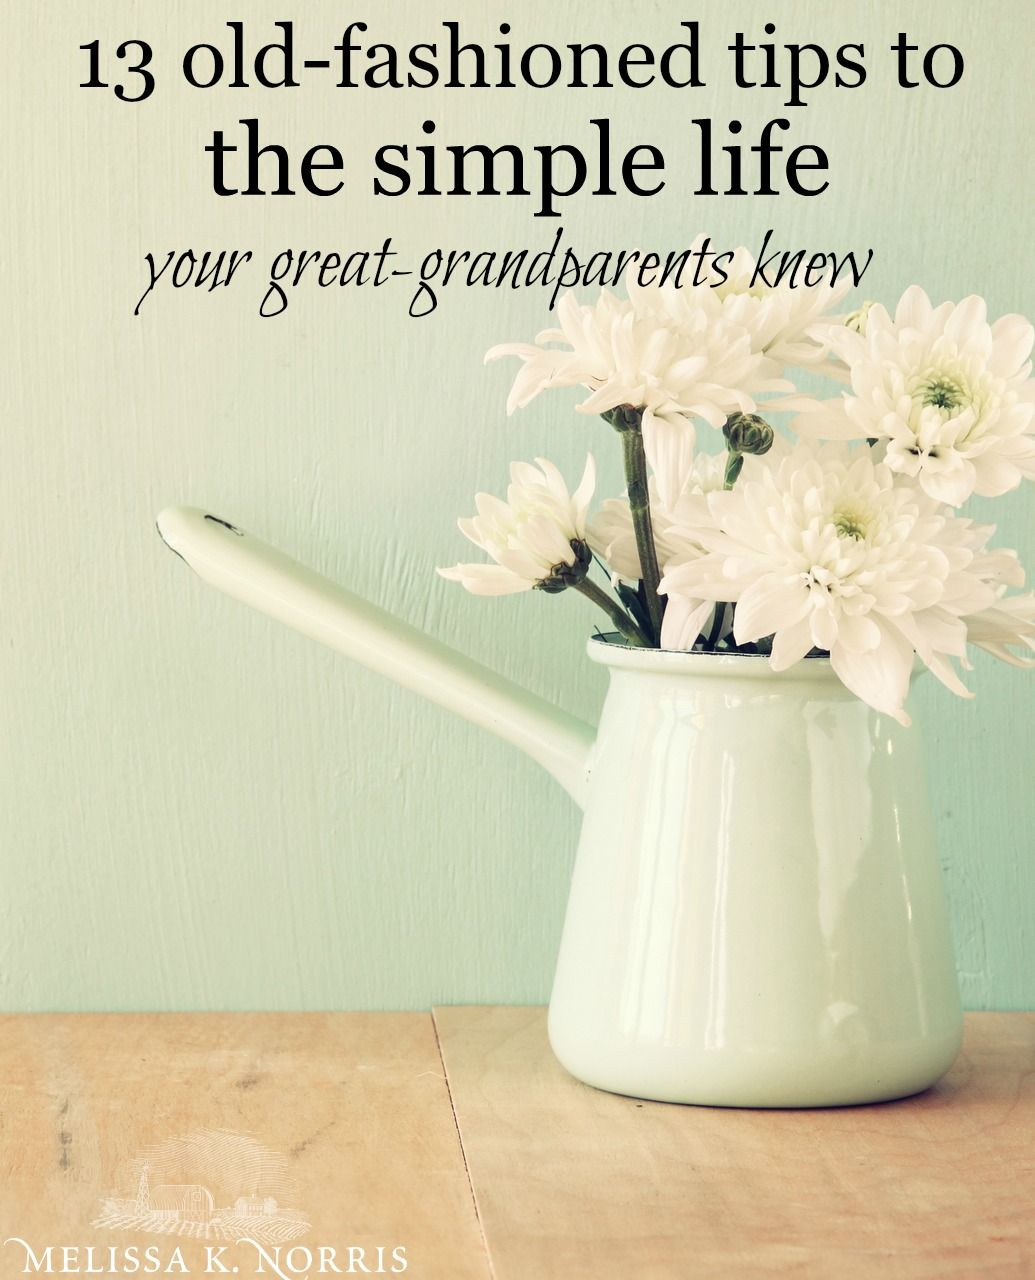 13 Steps to the Simple Life Your Great-Grandparents Knew – Melissa K. Norris